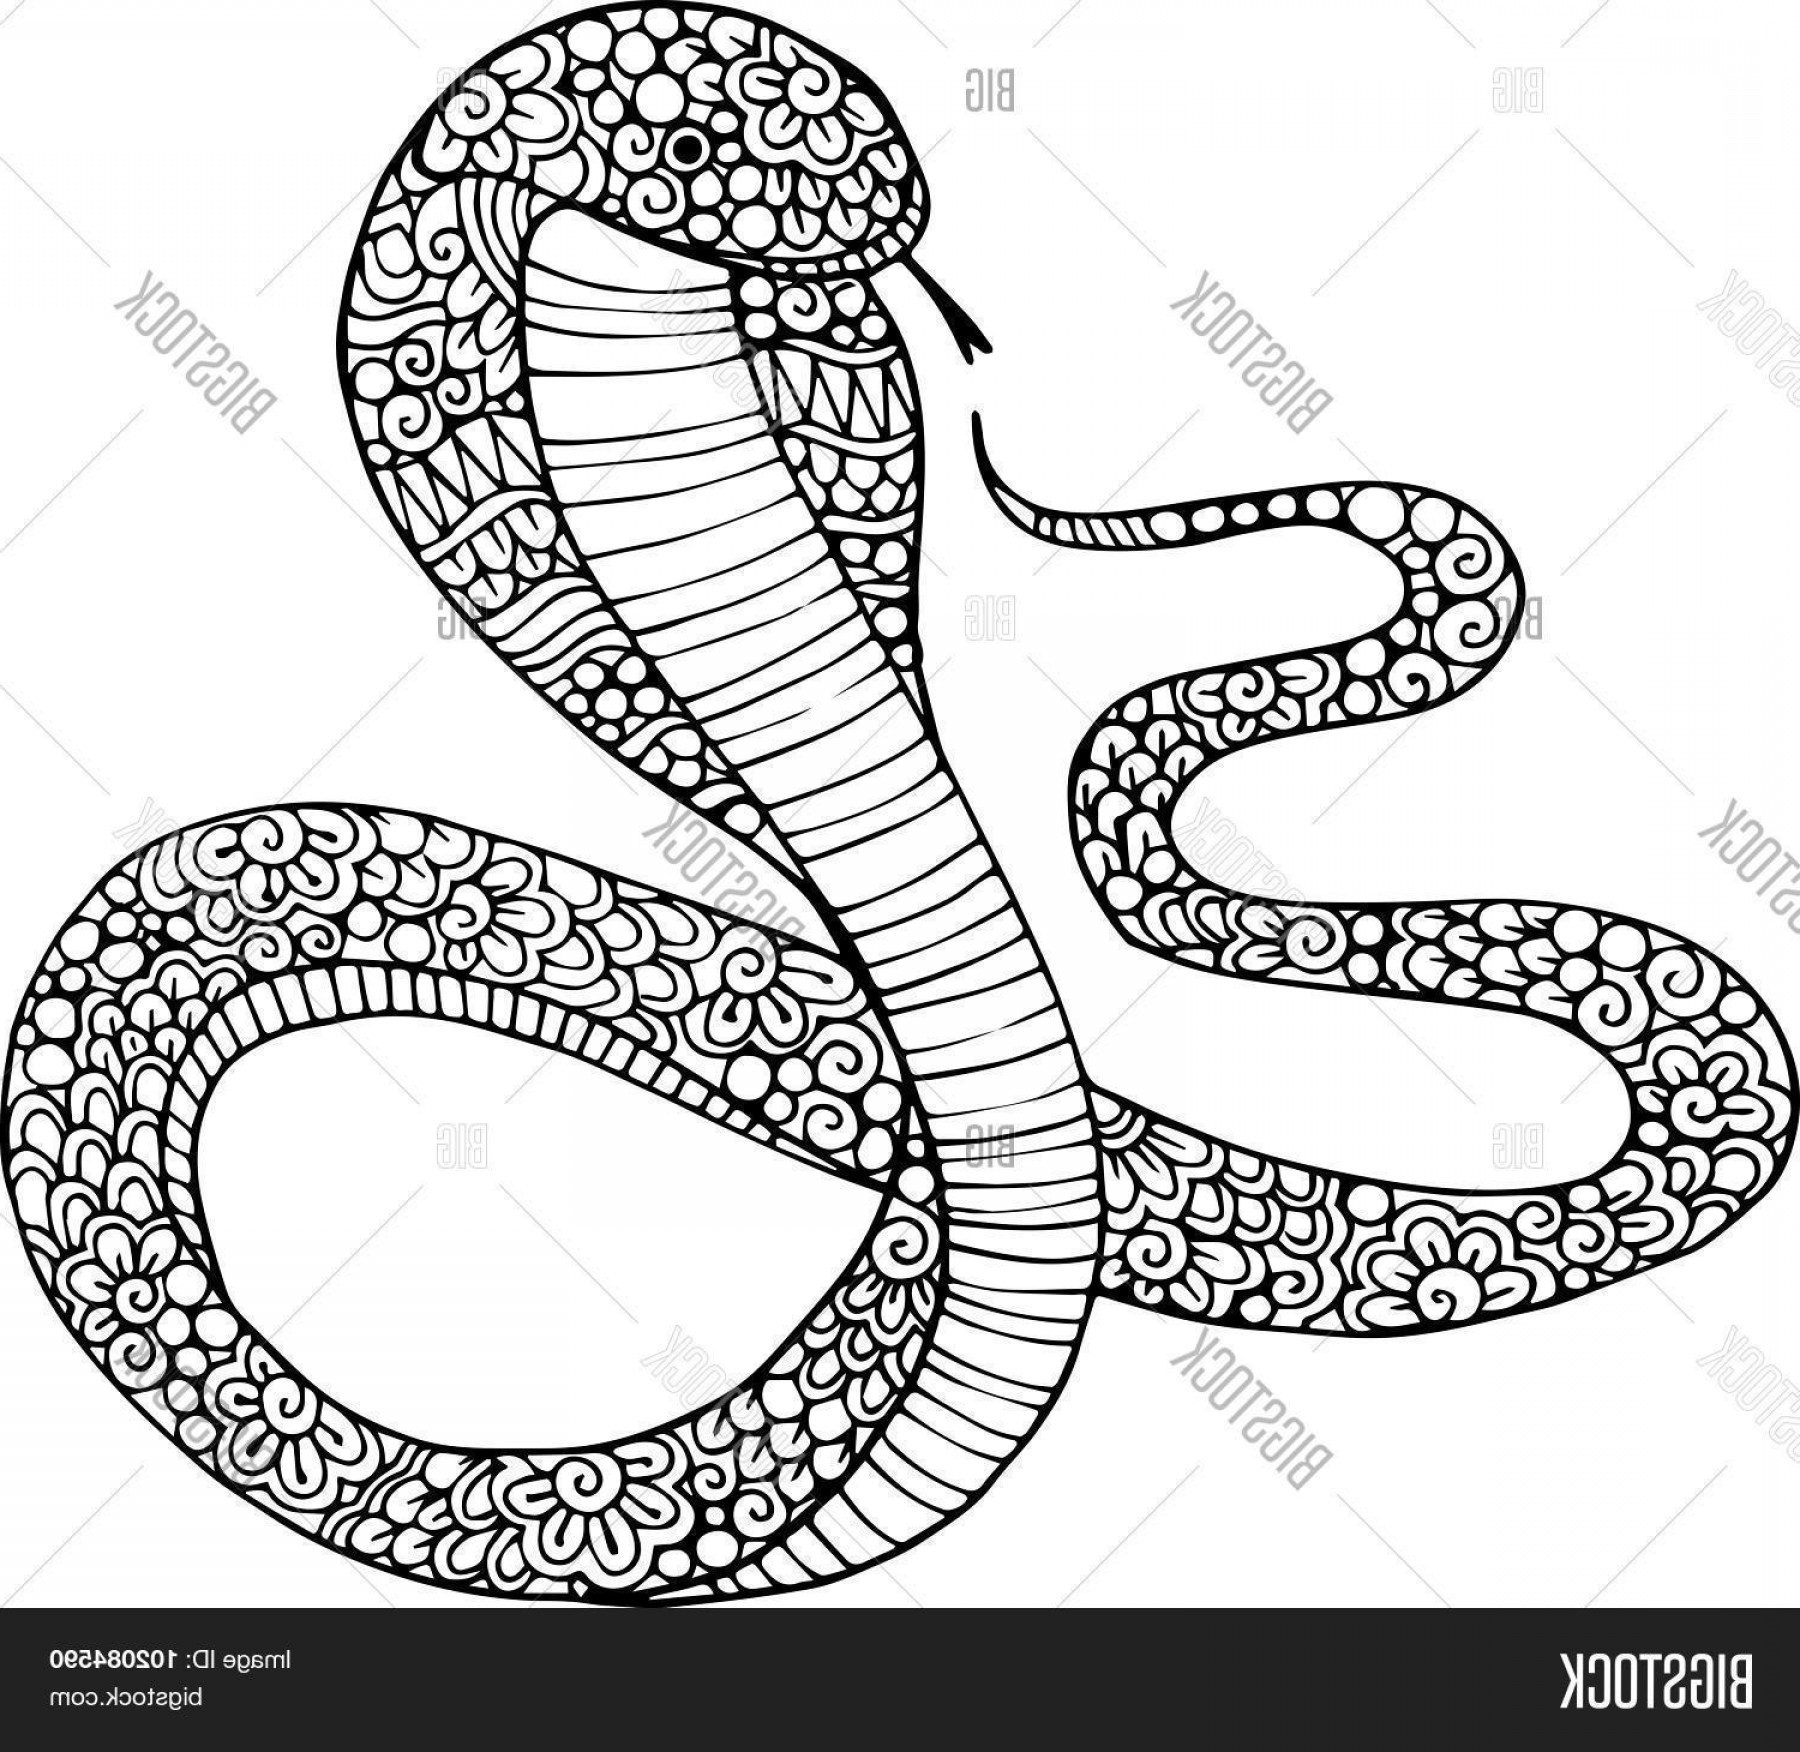 1800x1752 Large Snake Vector Art Arenawp